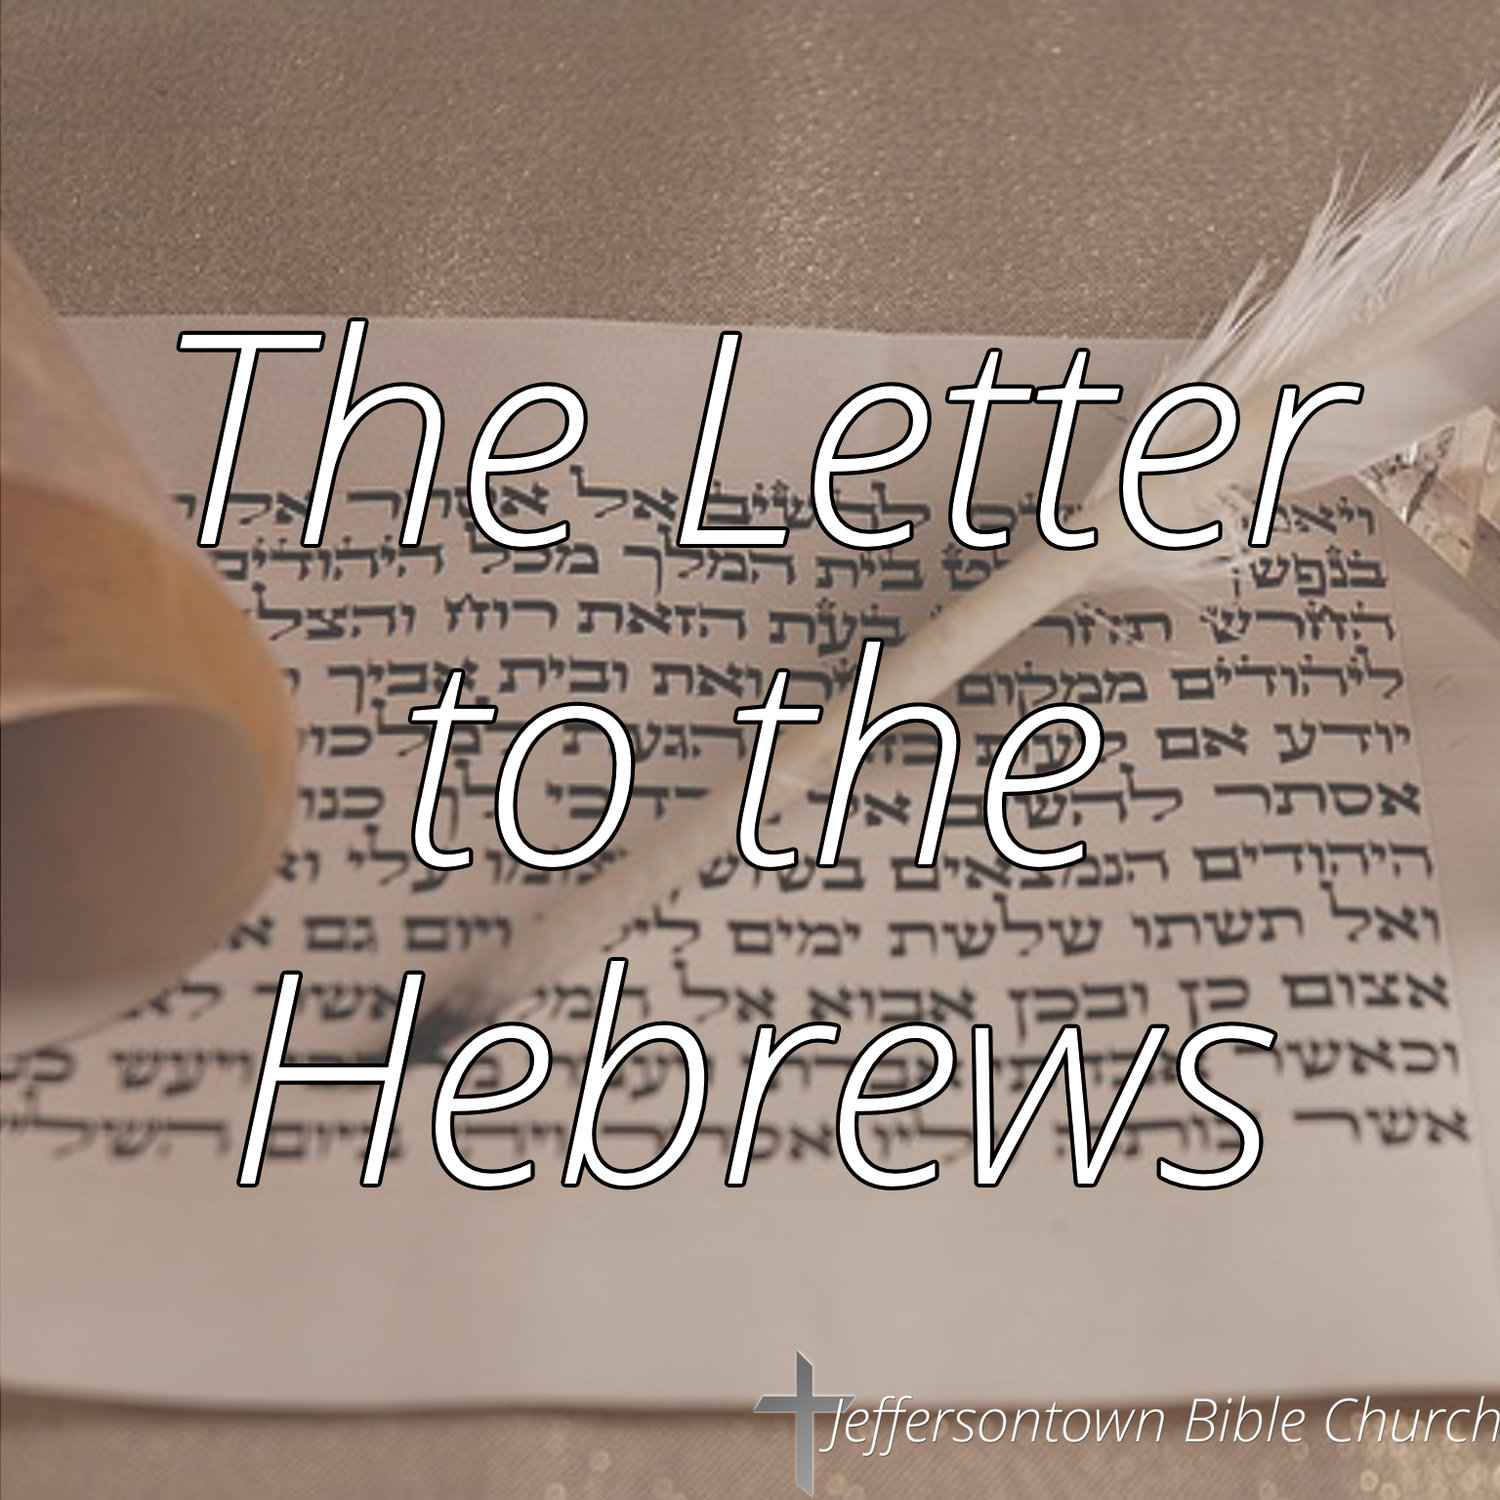 Five Exhortations Which Stimulate Entrance Into God's Rest, Part 4 - Hebrews 4:14-16